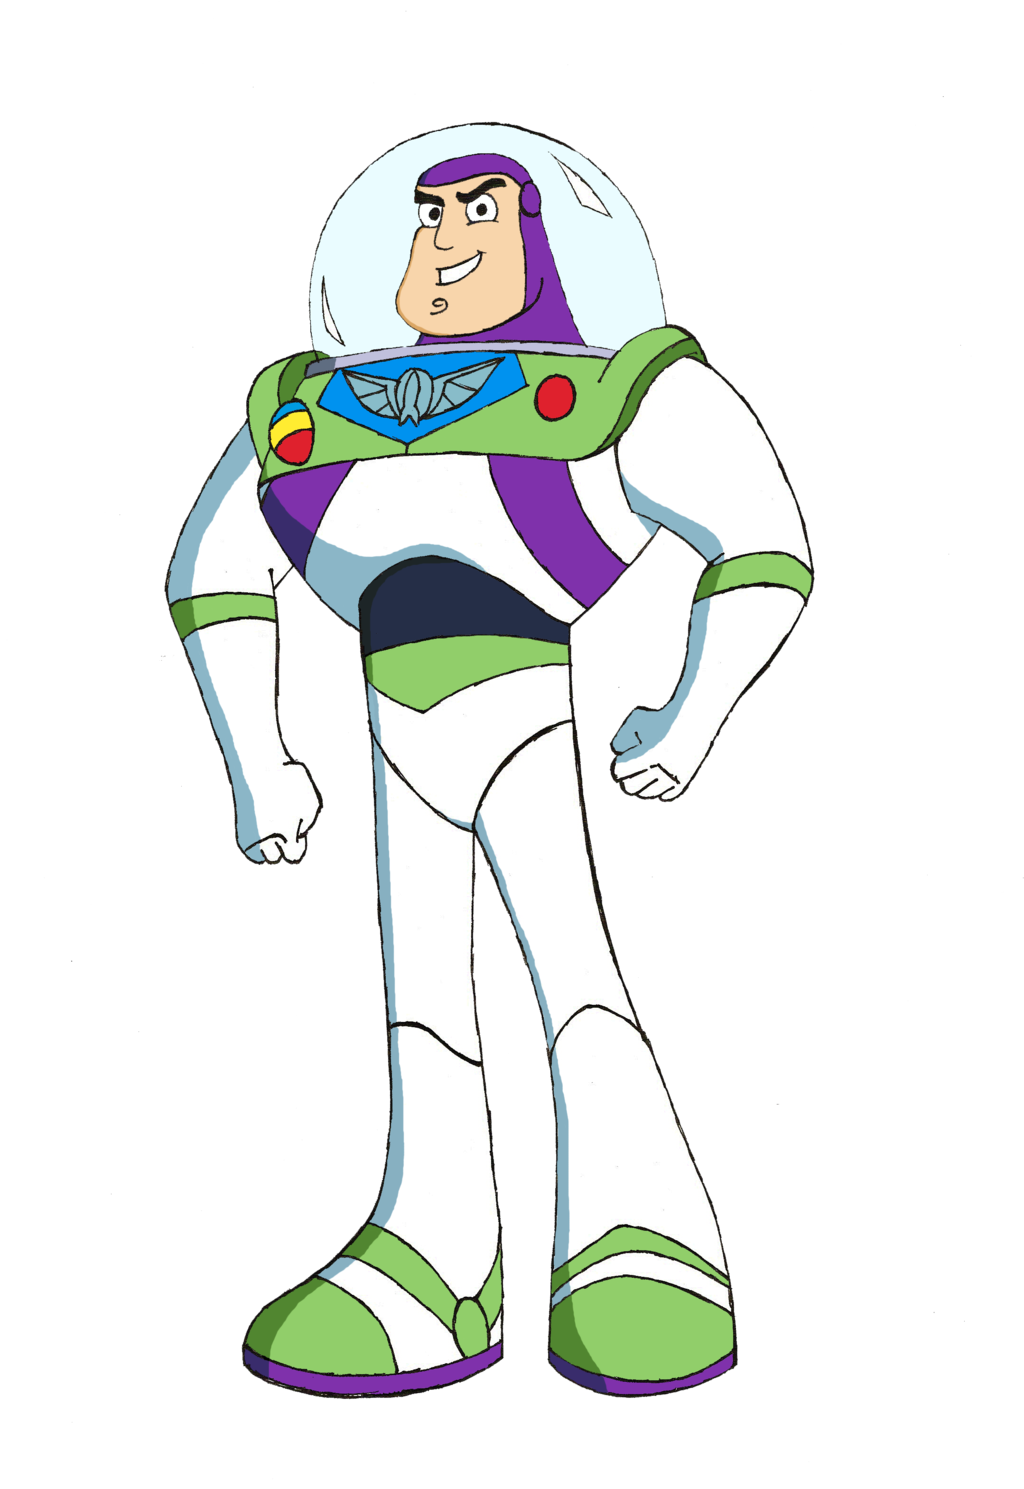 Buzz Cartoon - ClipArt Best